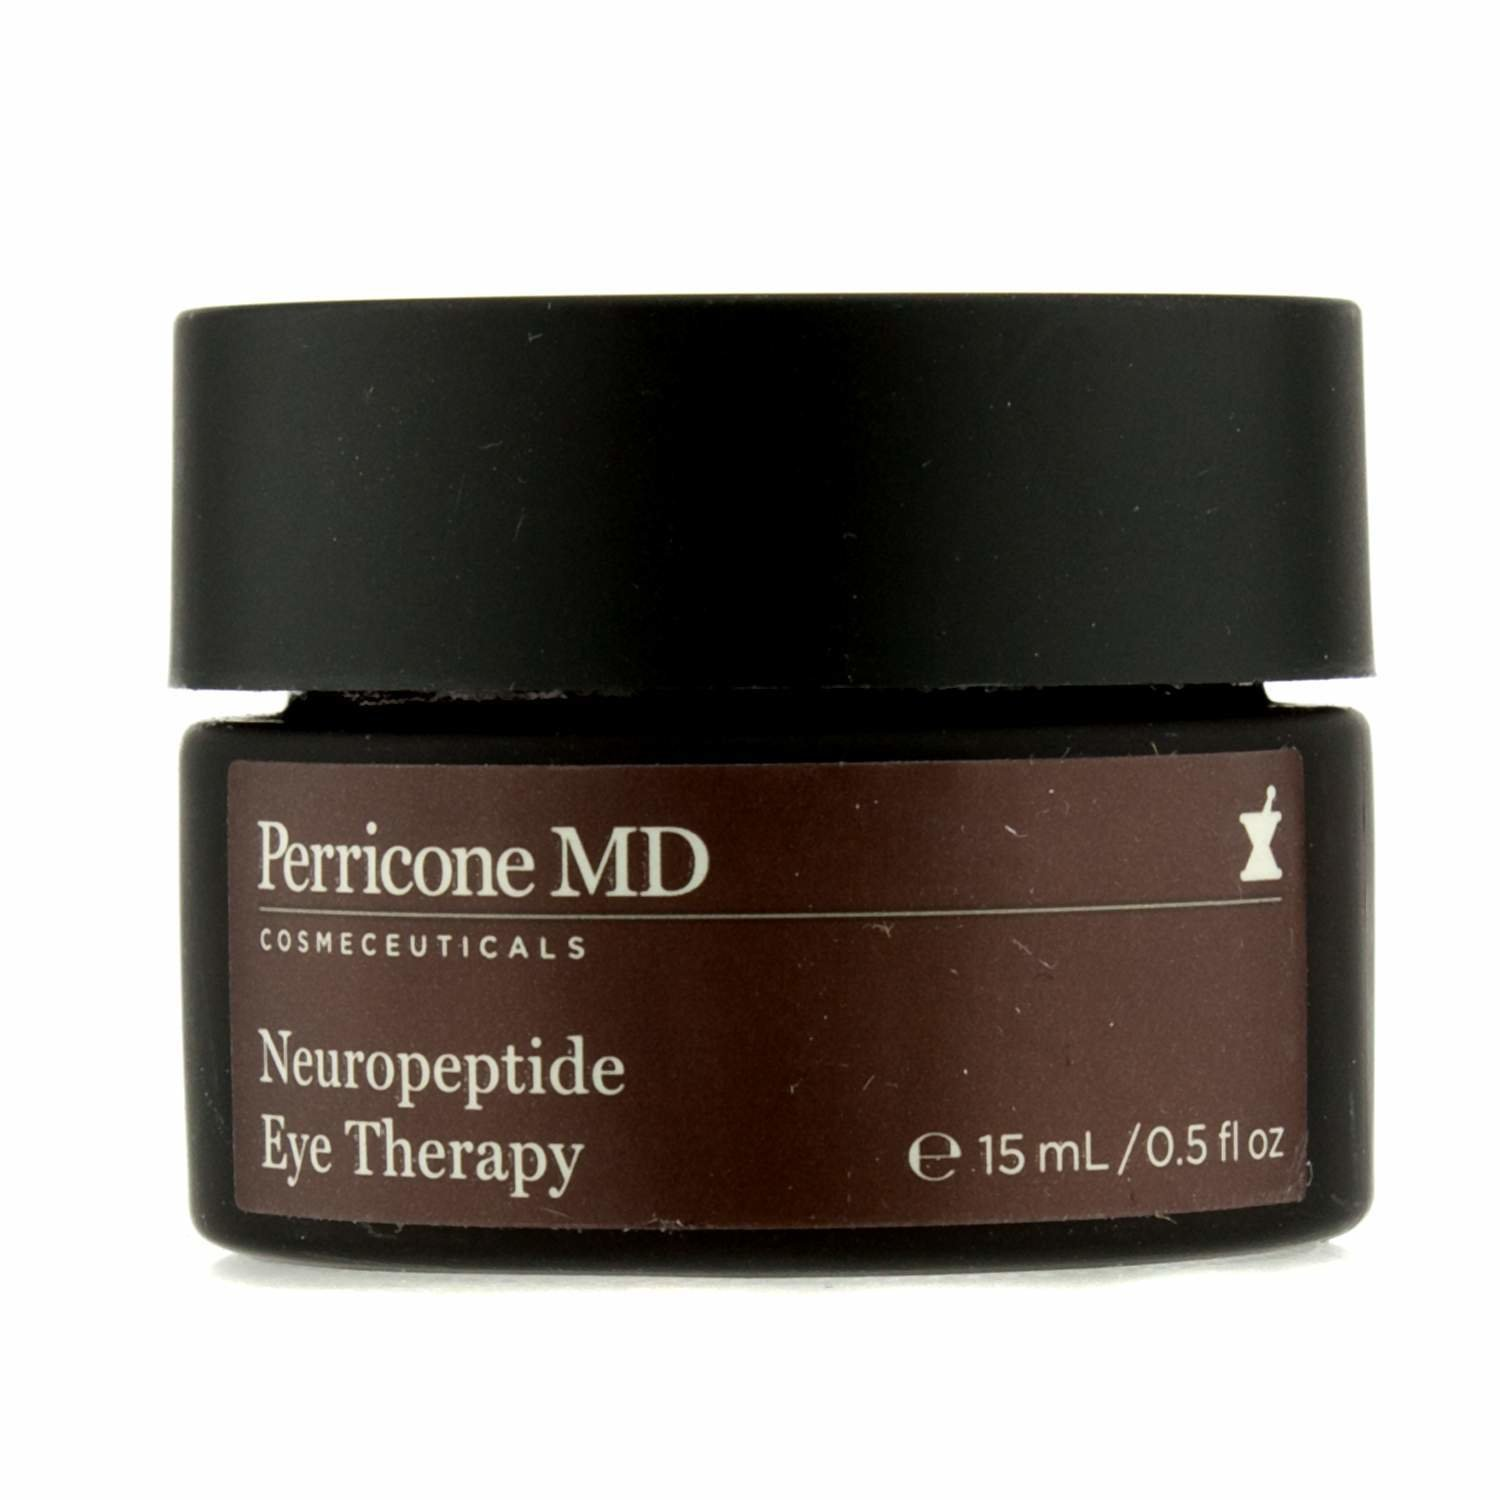 Perricone MD Neuropeptide Eye Therapy Eye Cream 15ml0.5oz